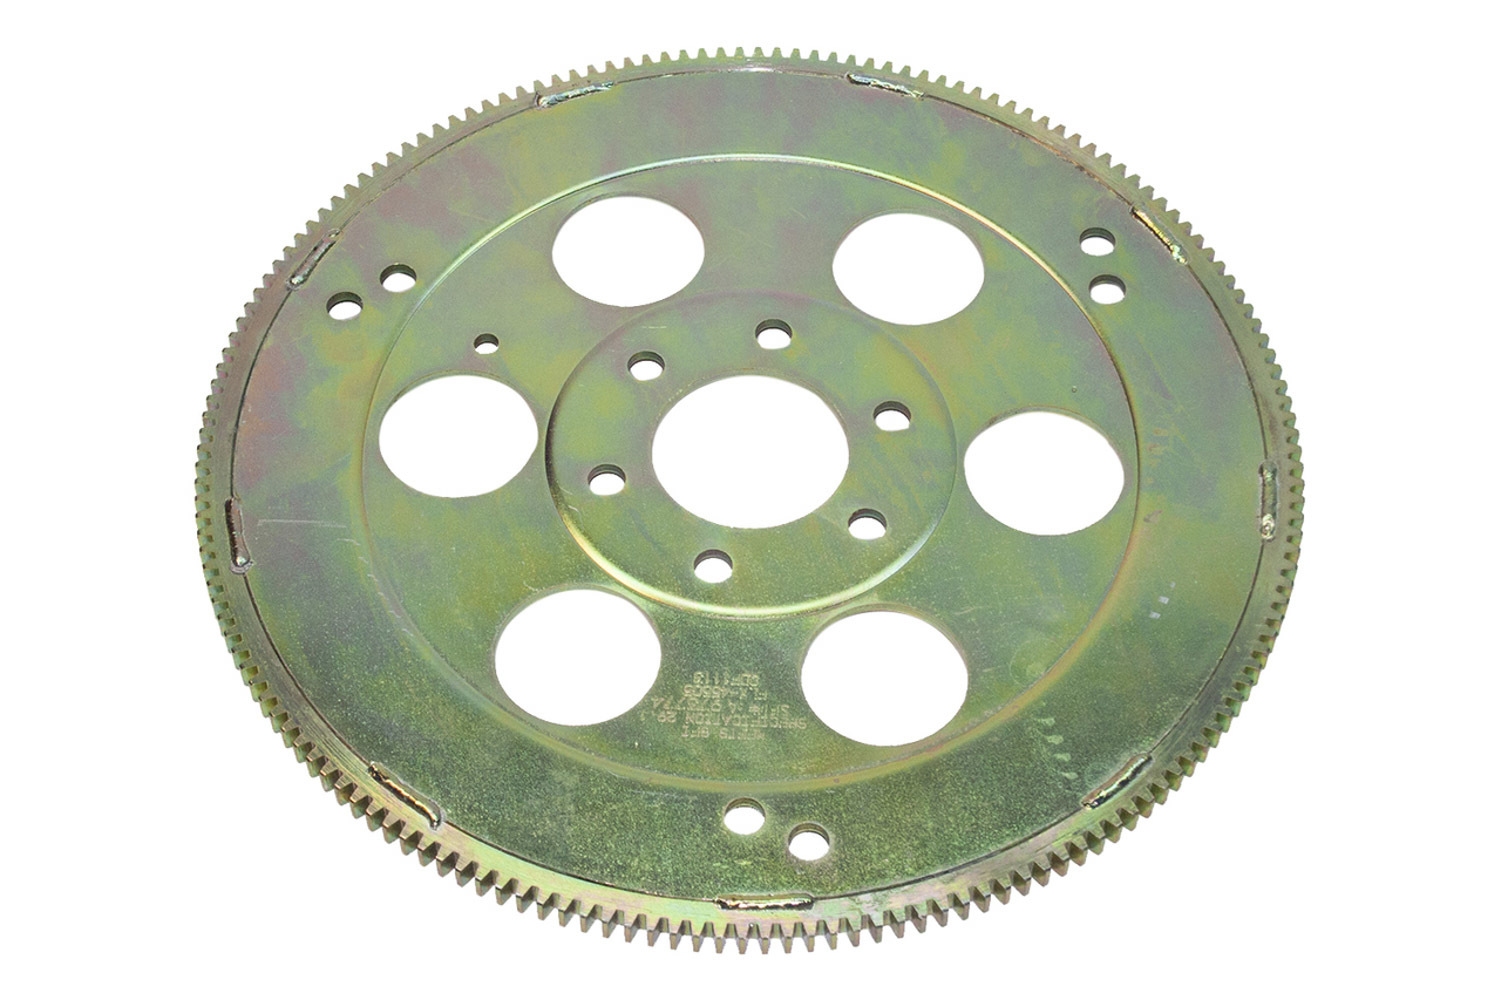 PRW Industries 1845505 Flexplate, 166 Tooth, SFI 29.1, Chromoly, Cadmium, External Balance, Oldsmobile V8, Each